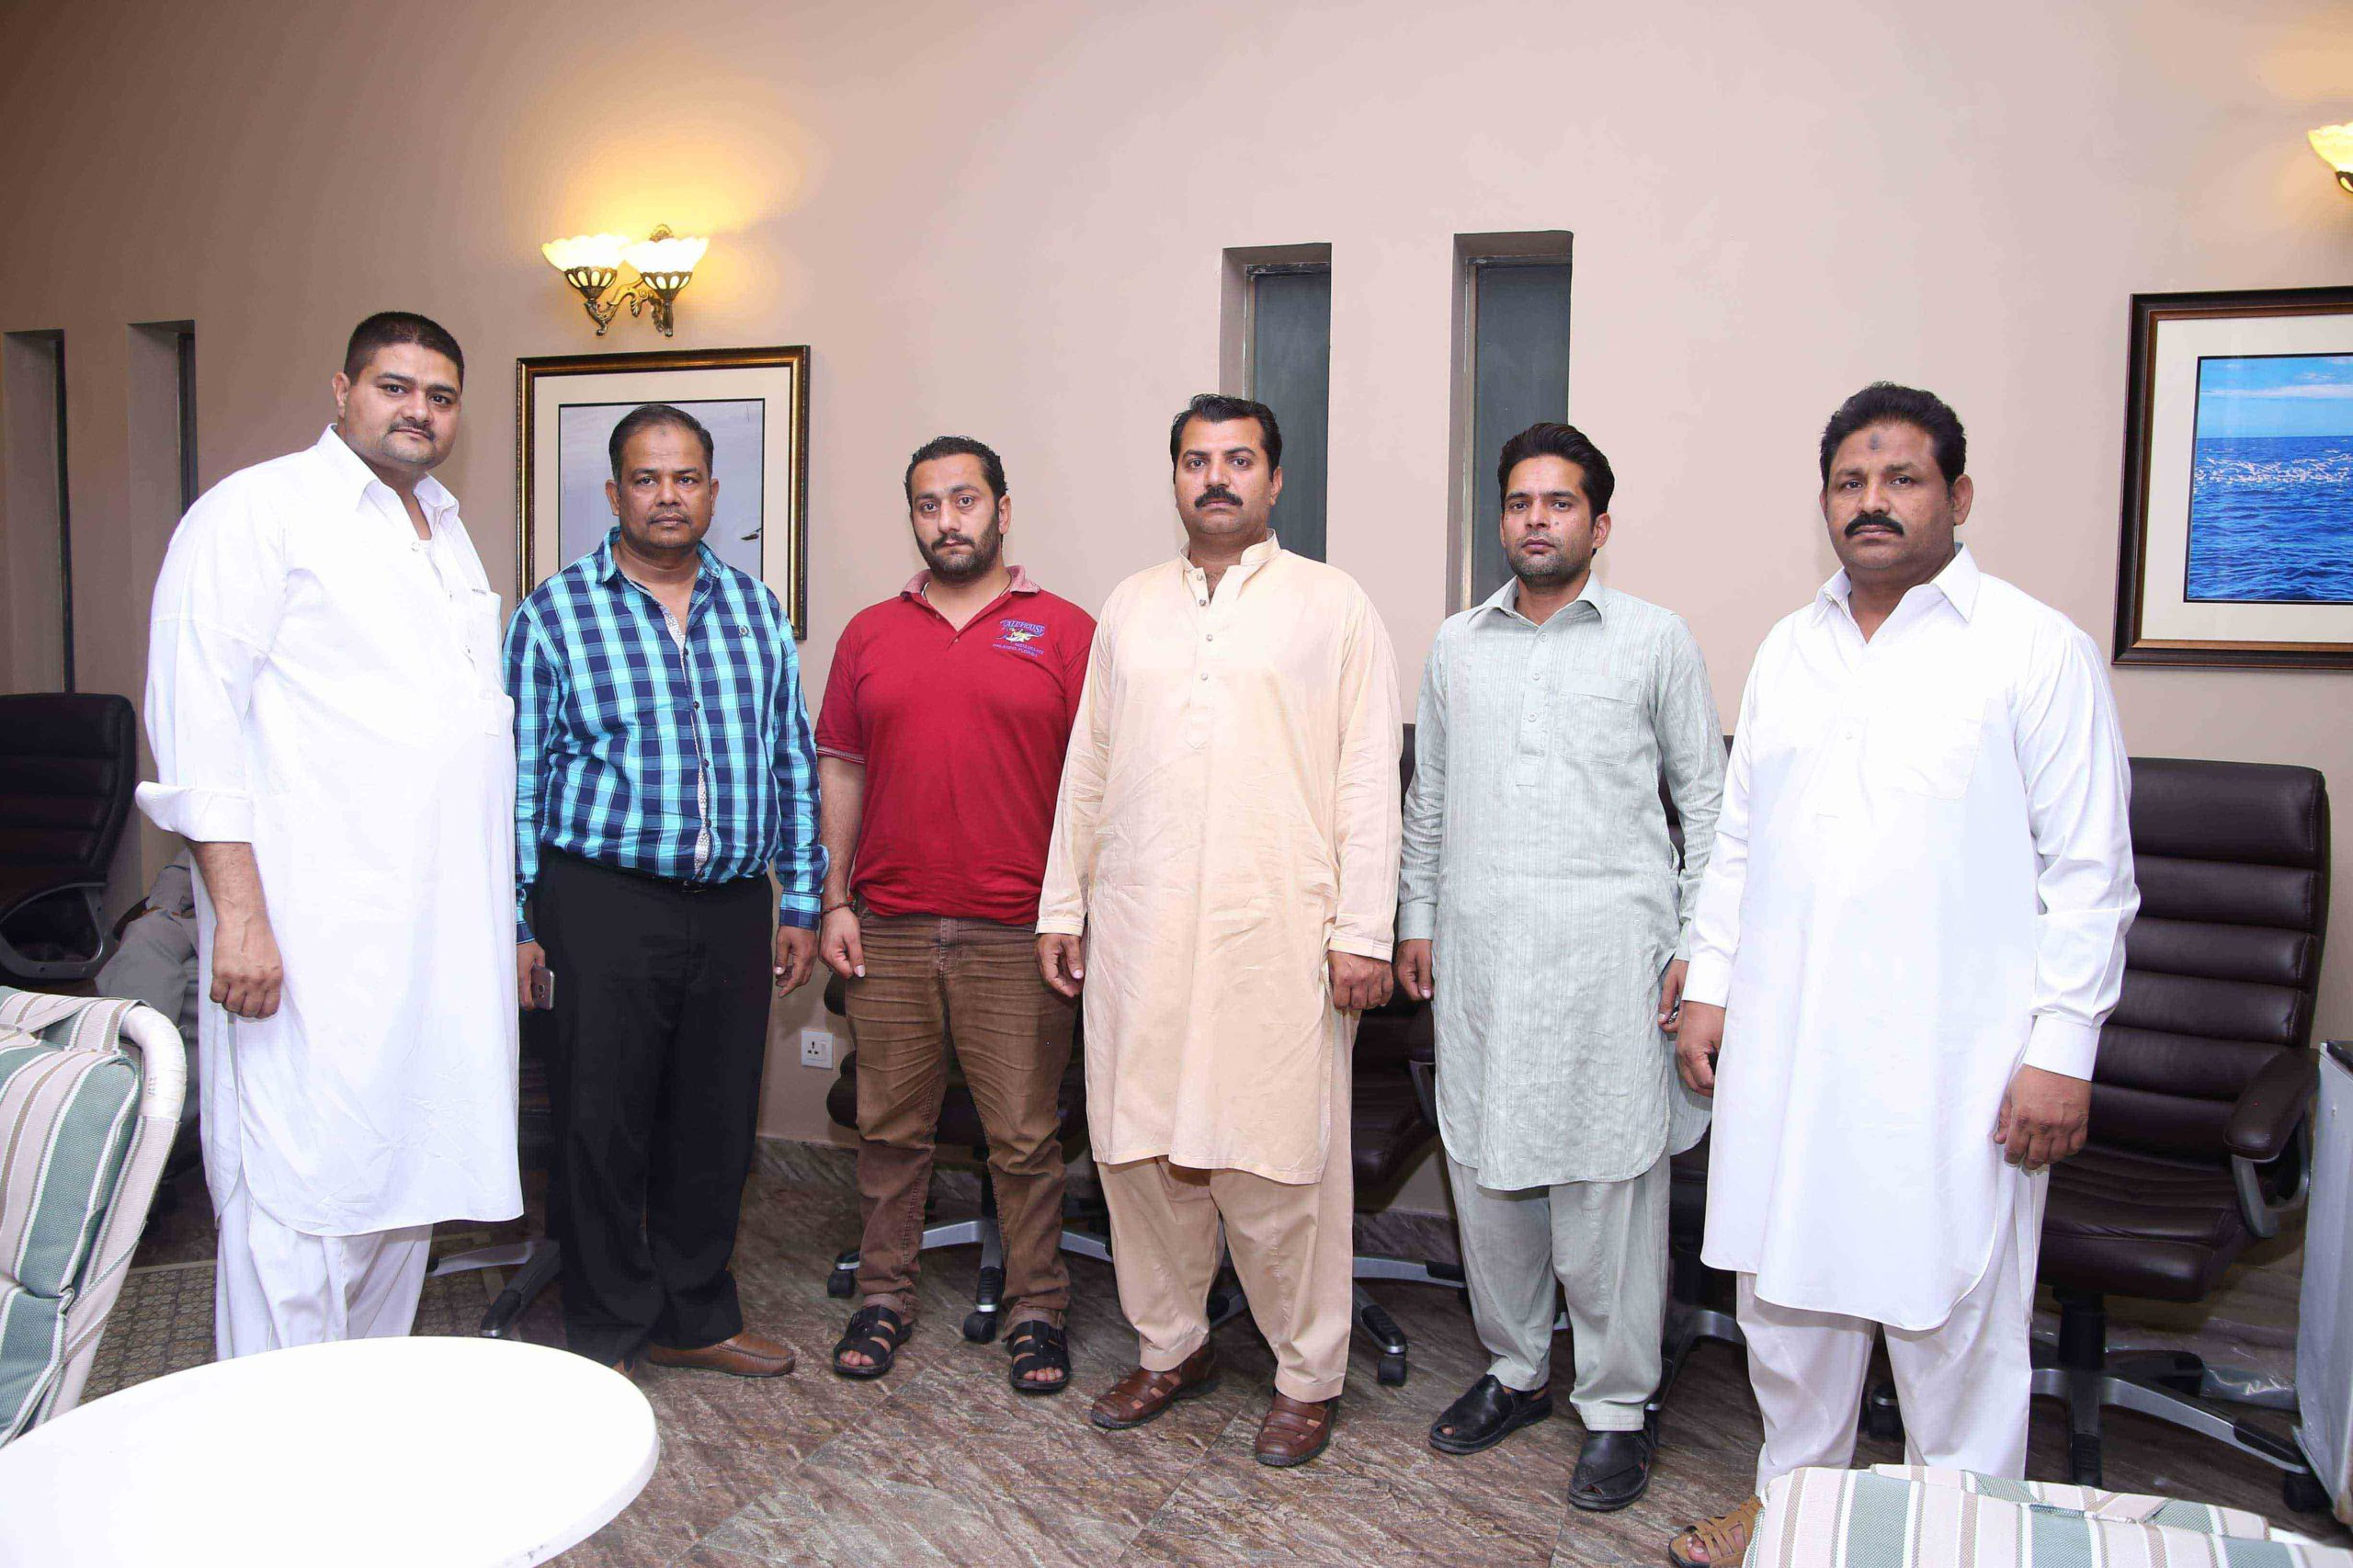 STAFF_ANNUAL_DINNER_&_IFTAR_PARTTY_26